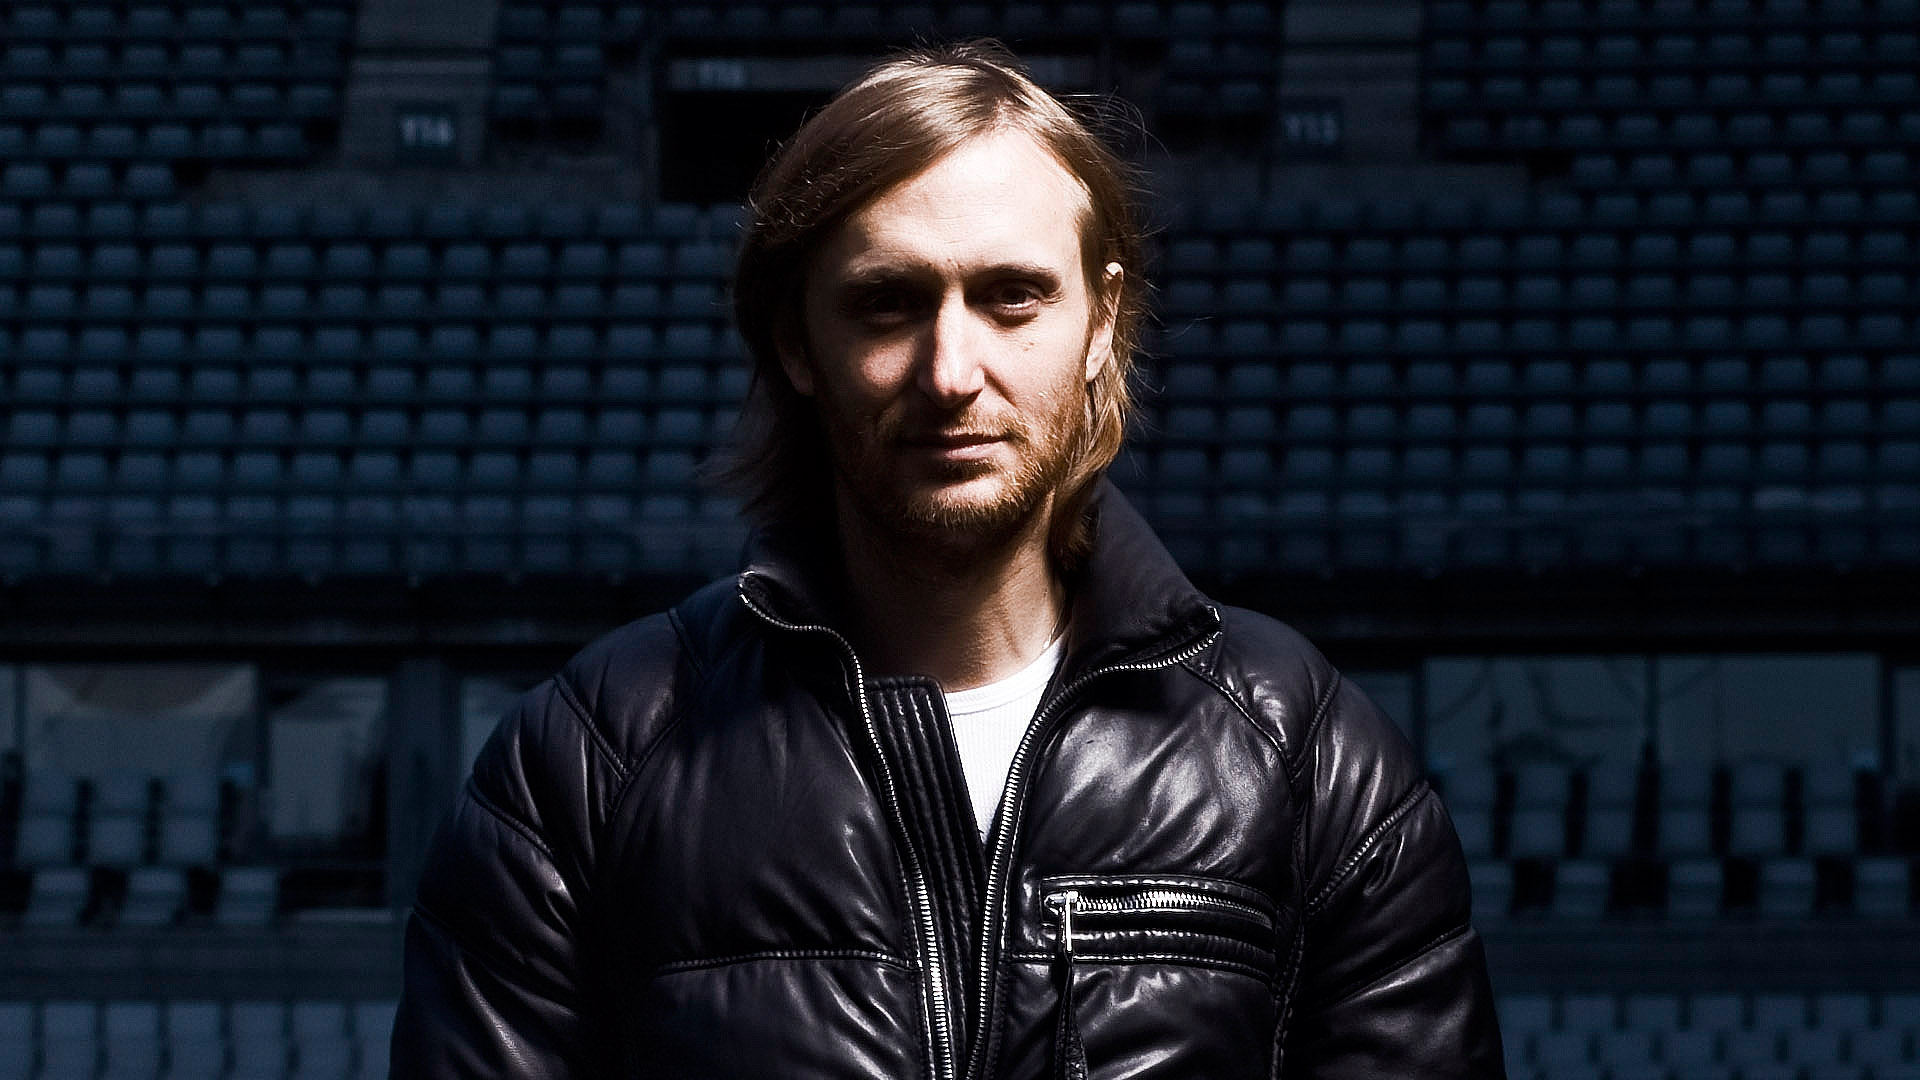 David Guetta HD Wallpapers